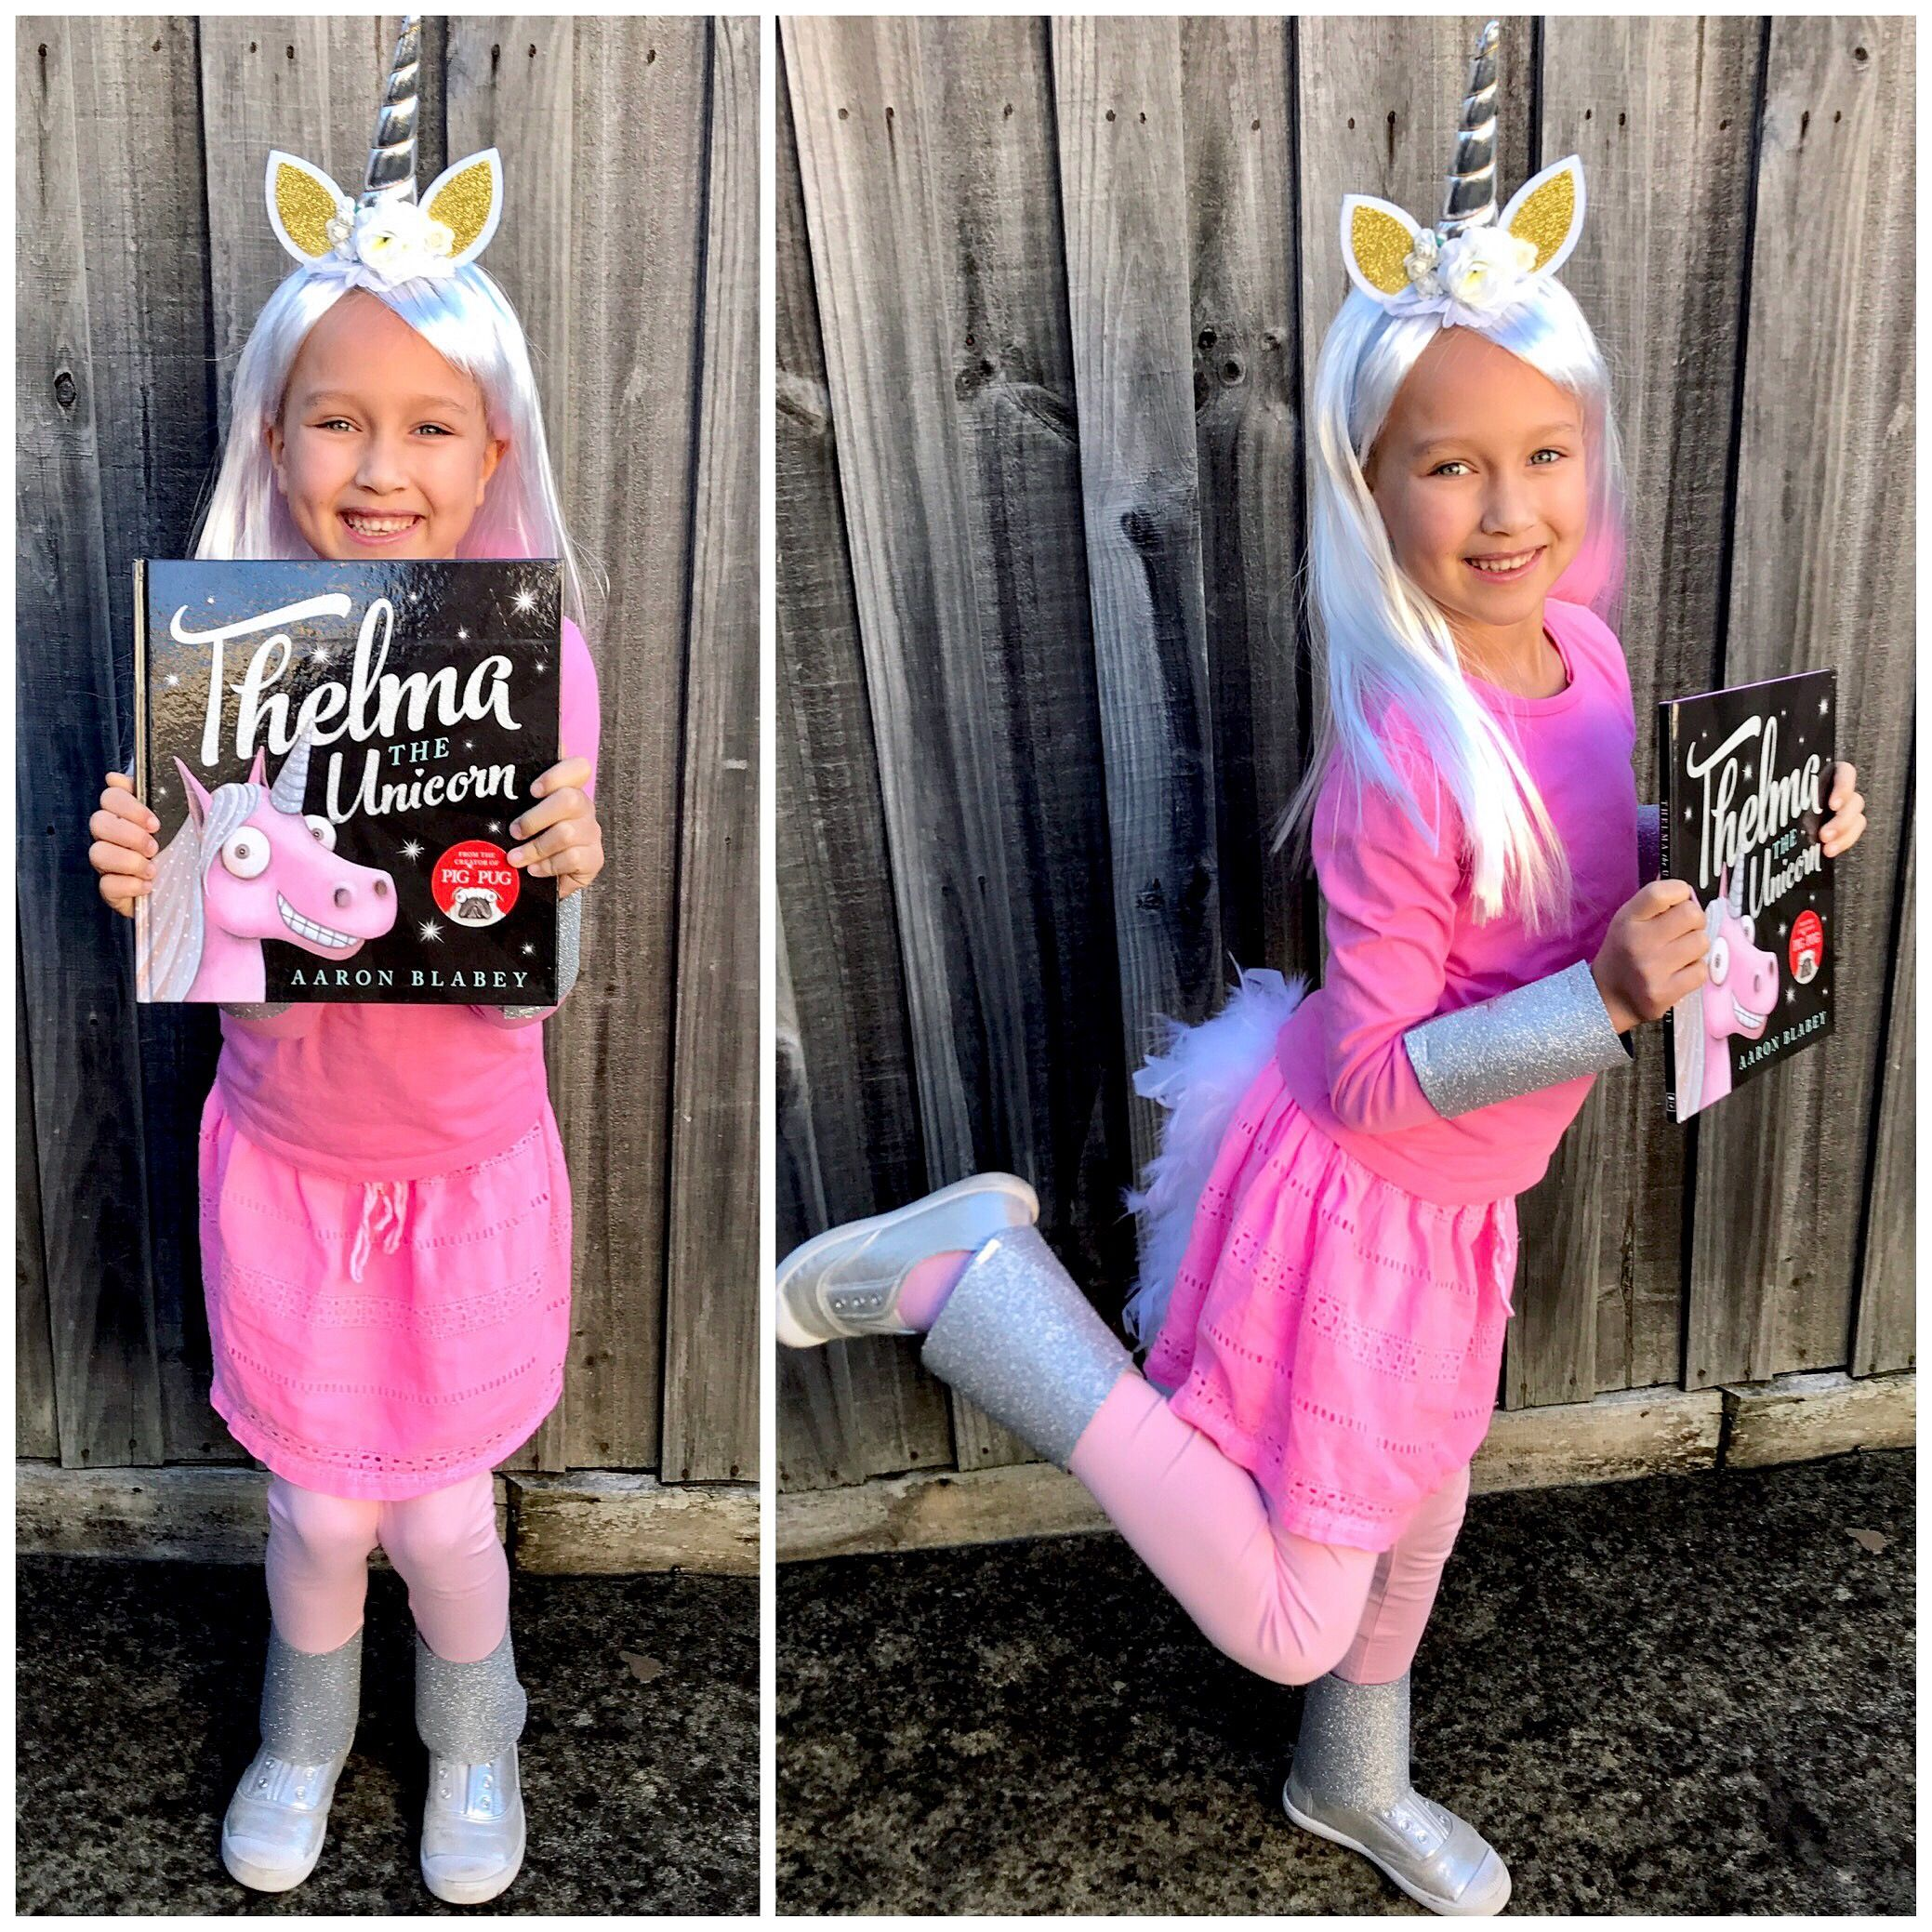 0cc1fda1 Thelma the Unicorn costume for Book week. ✨ | Dress up in 2019 ...